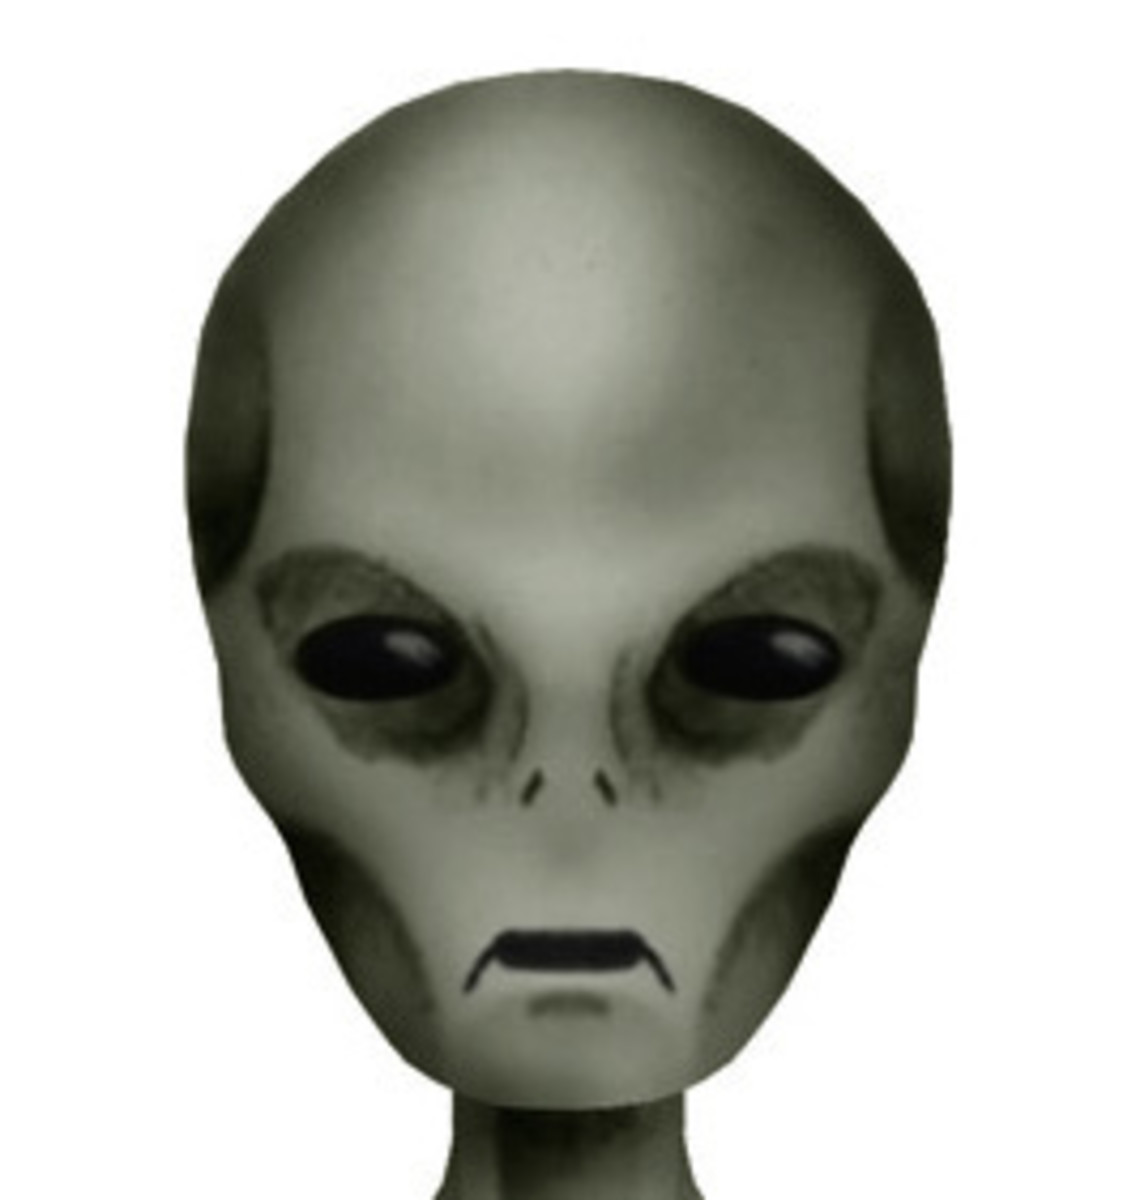 A rendition of the modern grey alien. Was this what Betty had seen, or were her earlier illustrations correct?